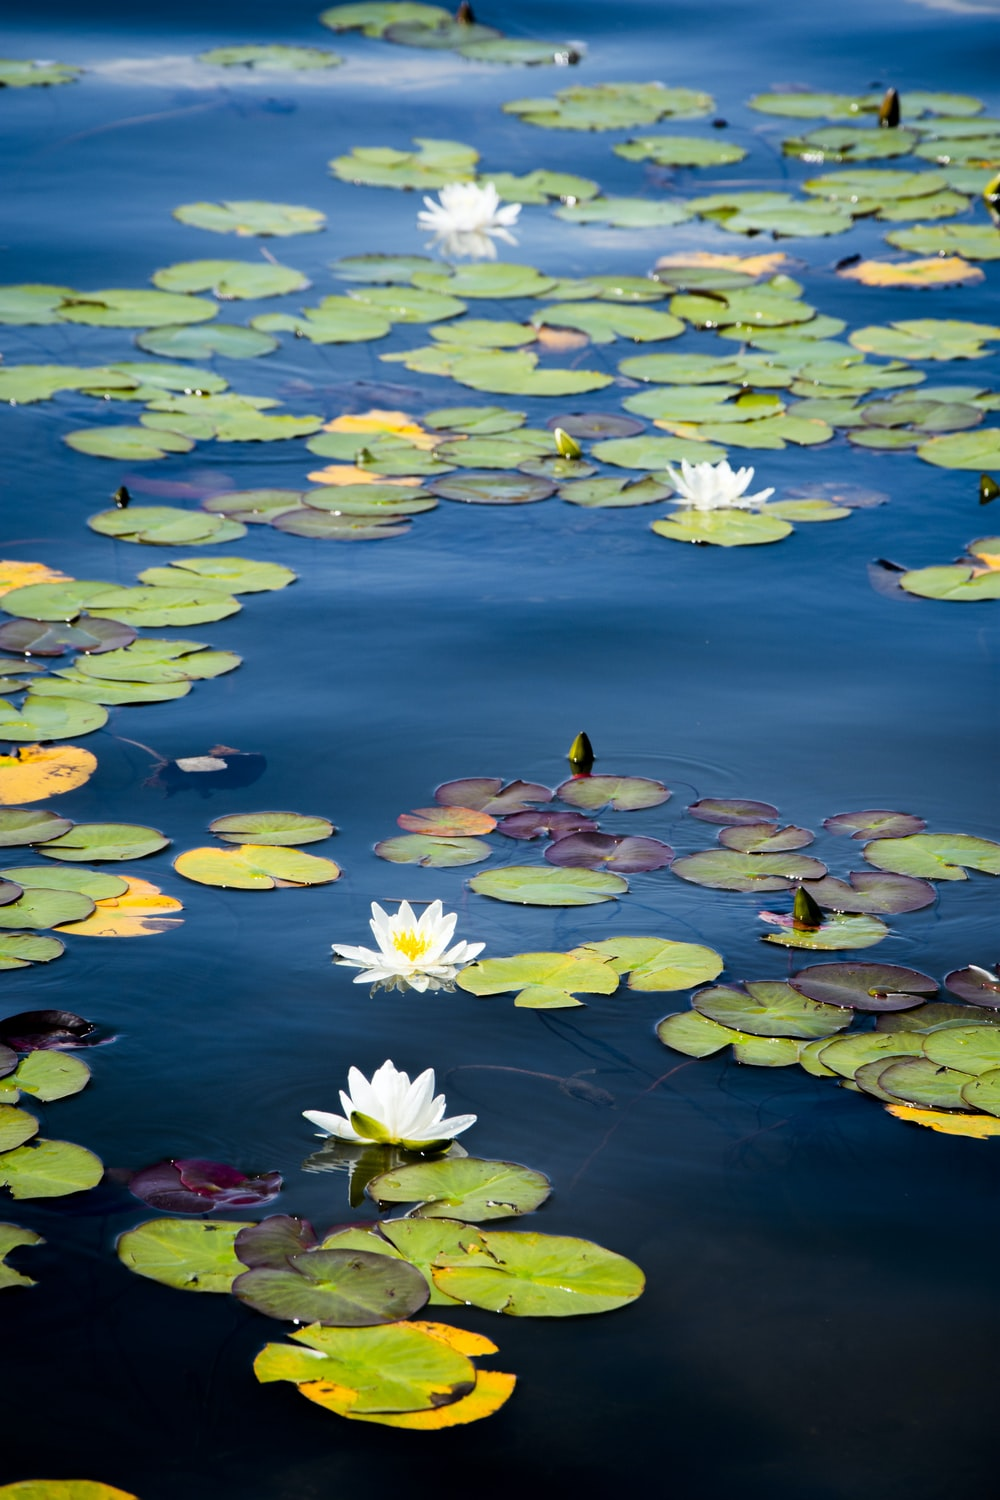 green lily pads on water